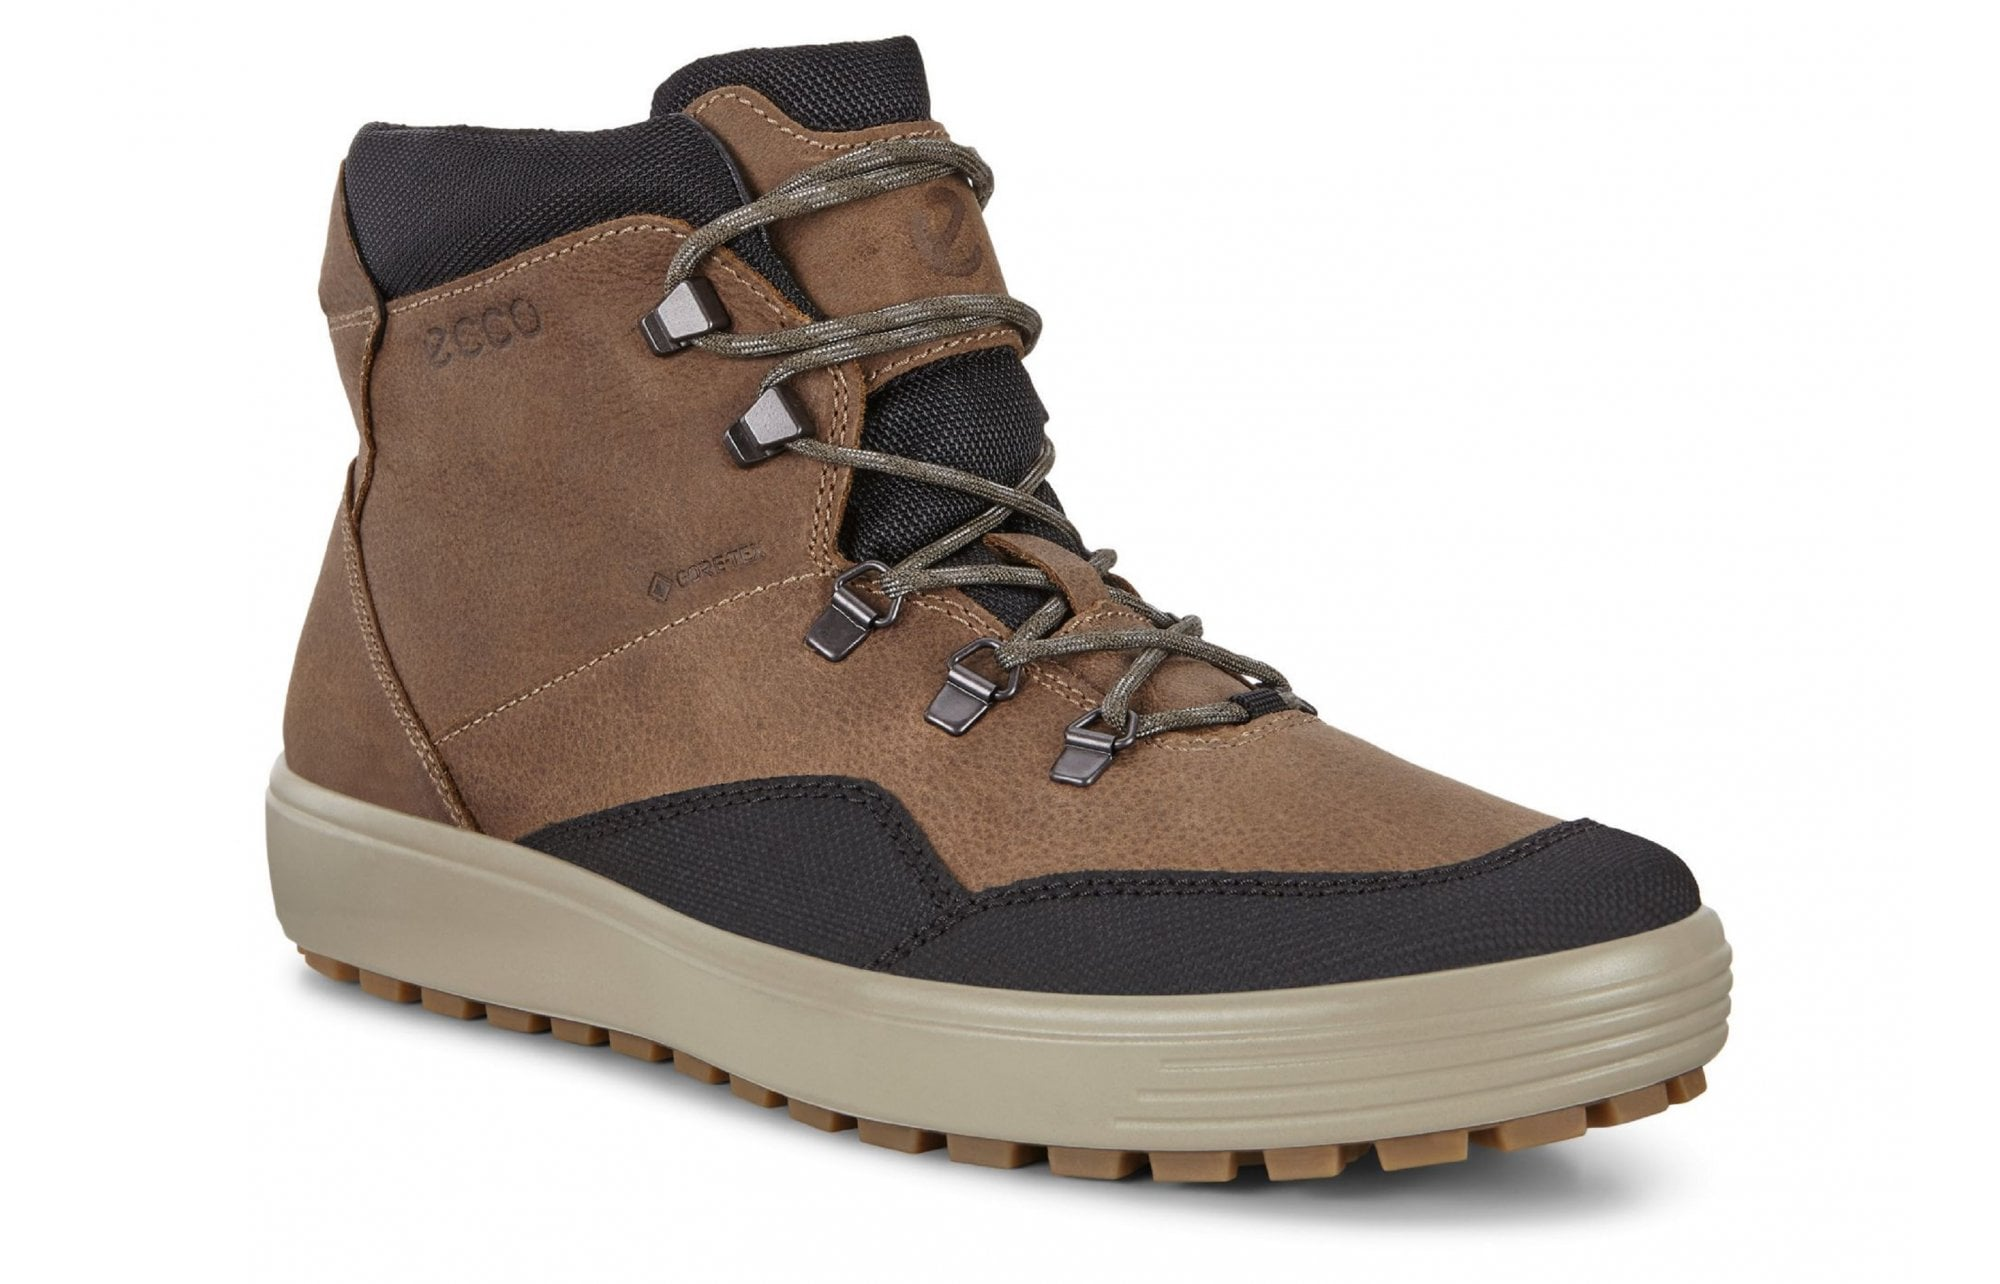 ECCO Ecco Soft 7 Tred M Mens Boots - Brown - Men from Johnsons Shoes UK